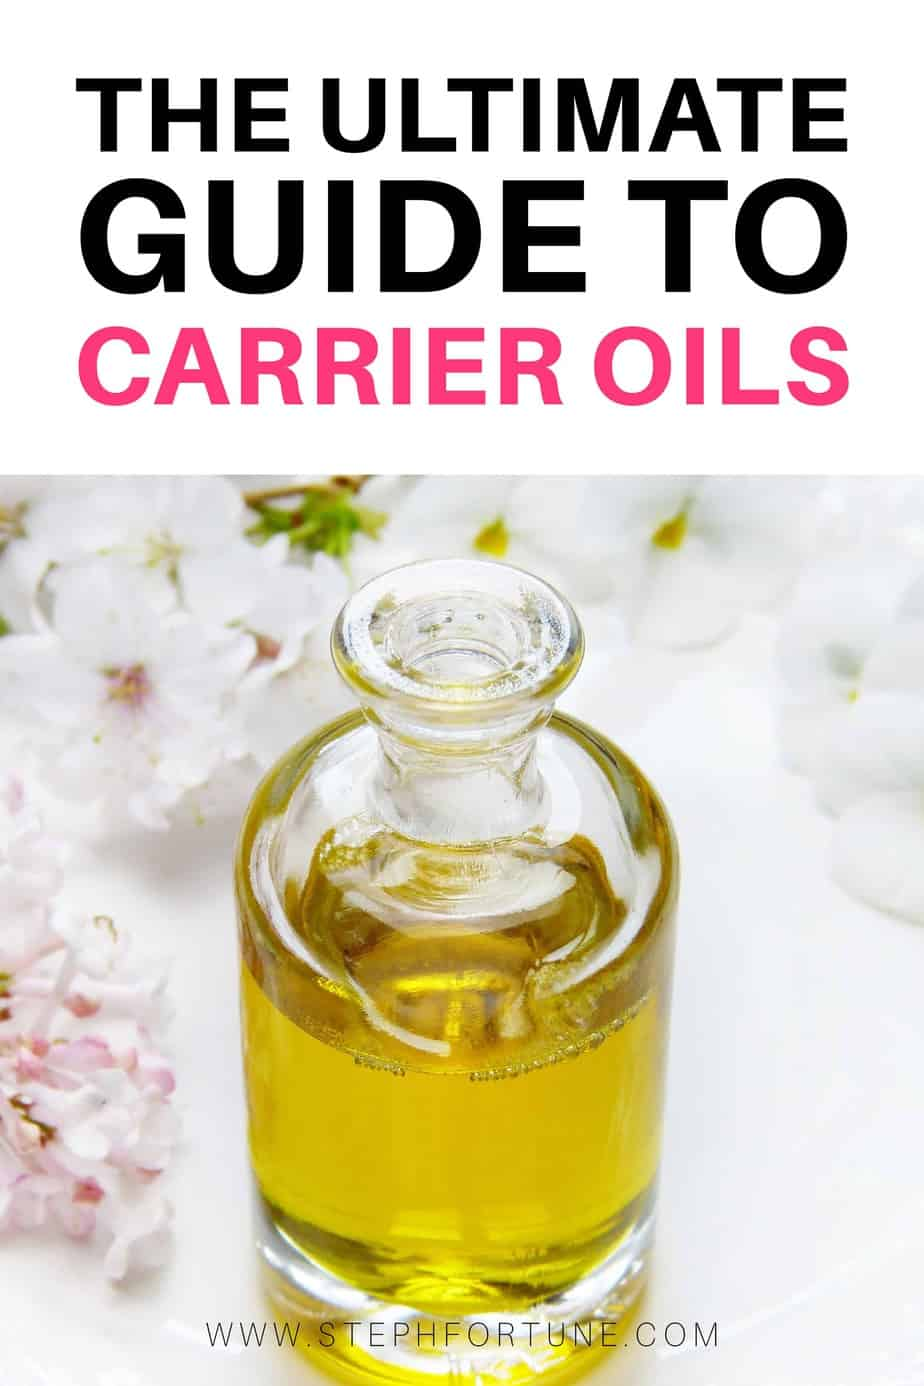 The Ultimate Guide to Carrier Oils - A list of many different carrier oils you can use to dilute essential oils